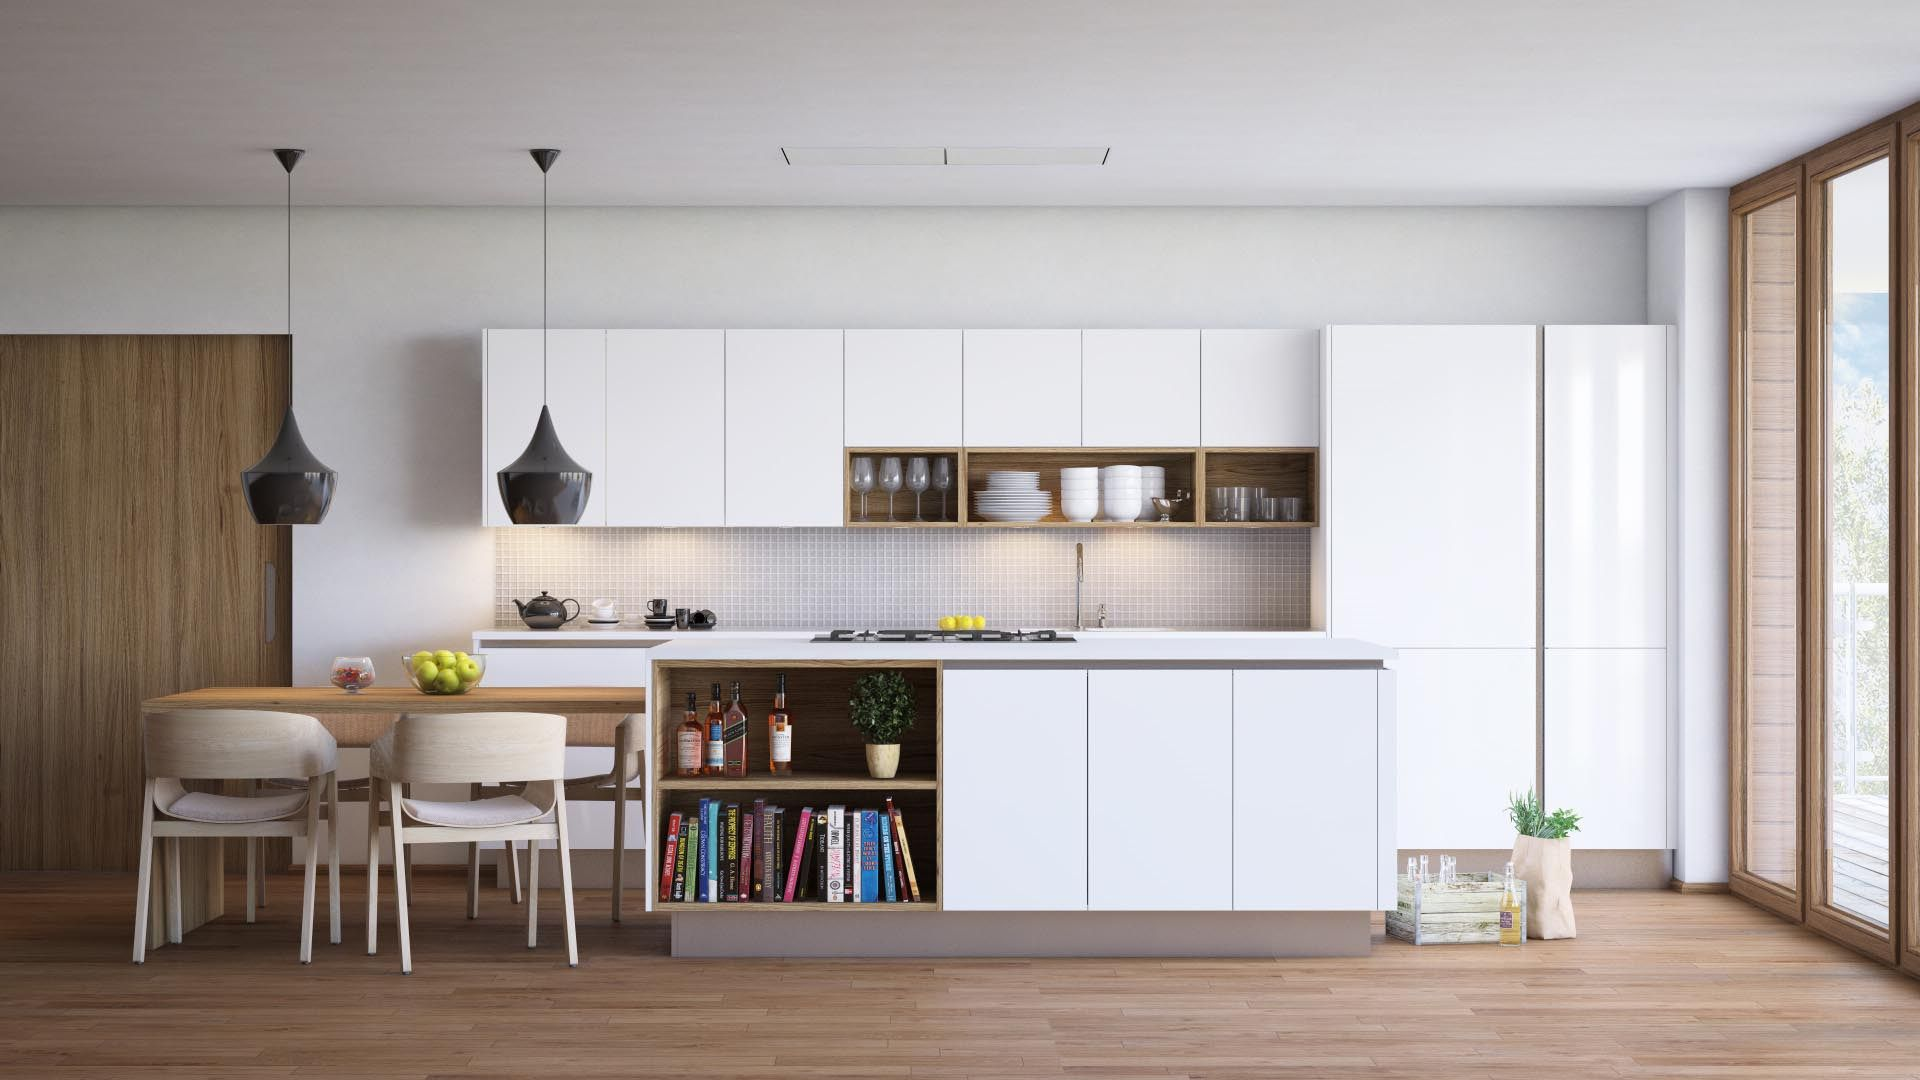 Best Muller Cabinetry Gallery With Images Home Decor 400 x 300